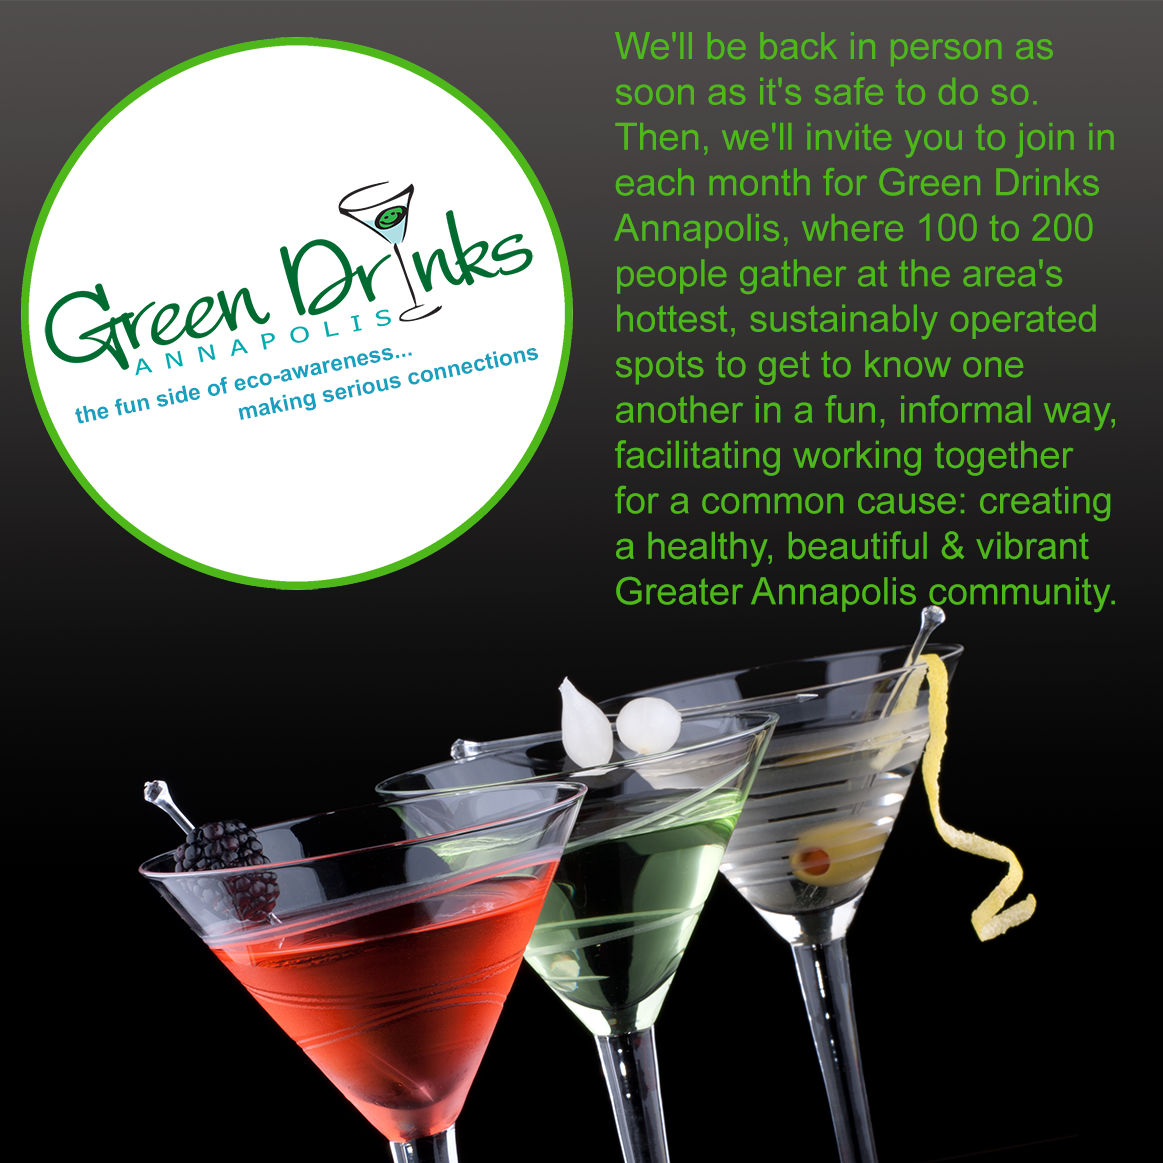 Green Drinks will be back